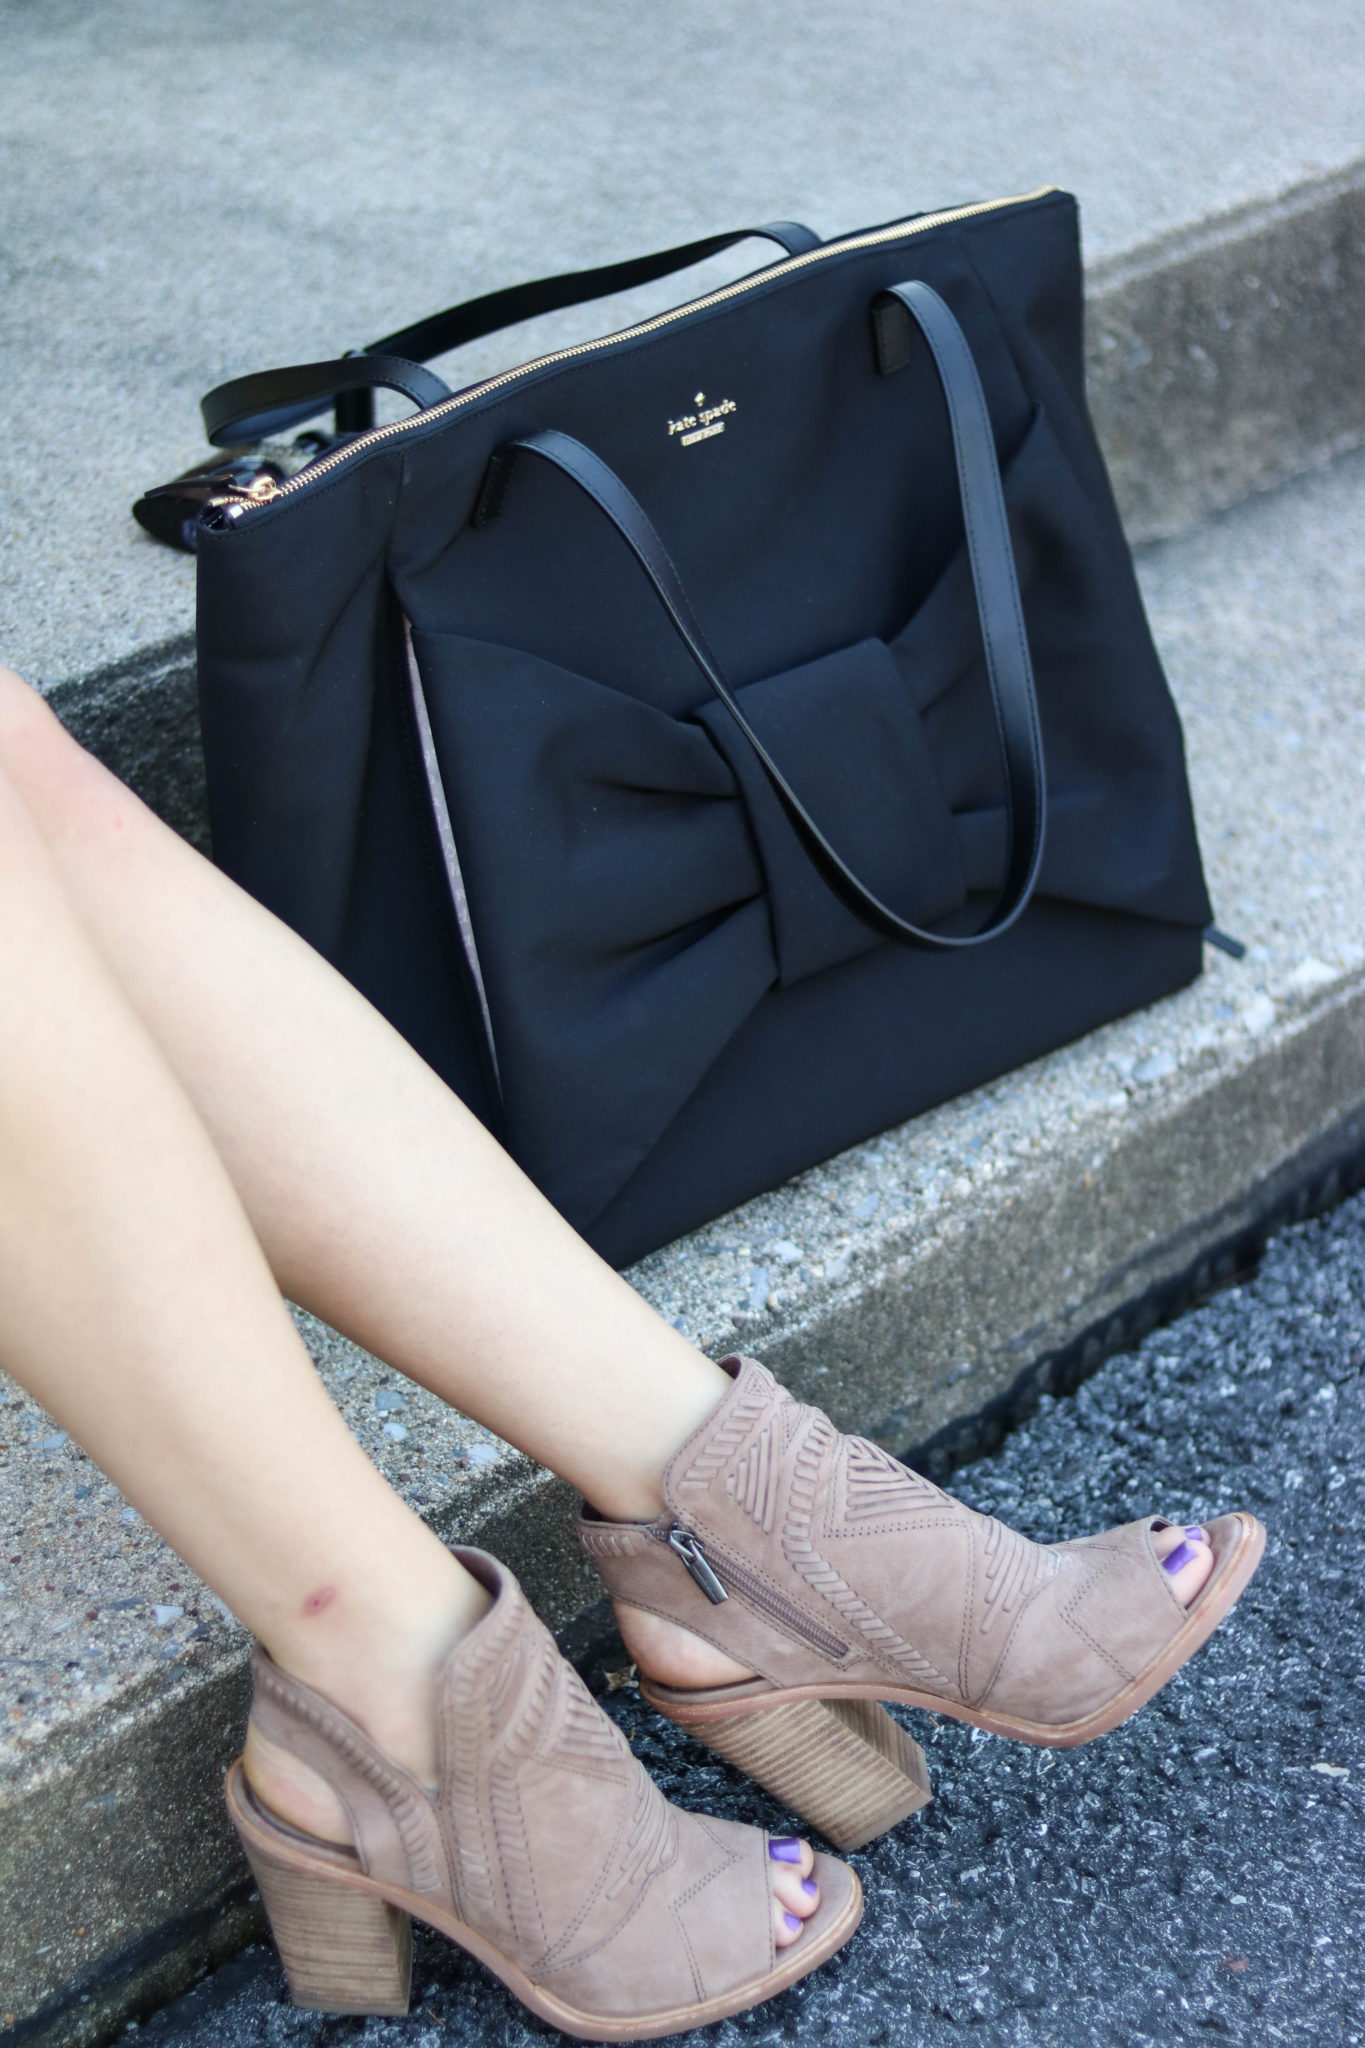 Things I Love - Kate Spade kenna Tote, Peep toe booties